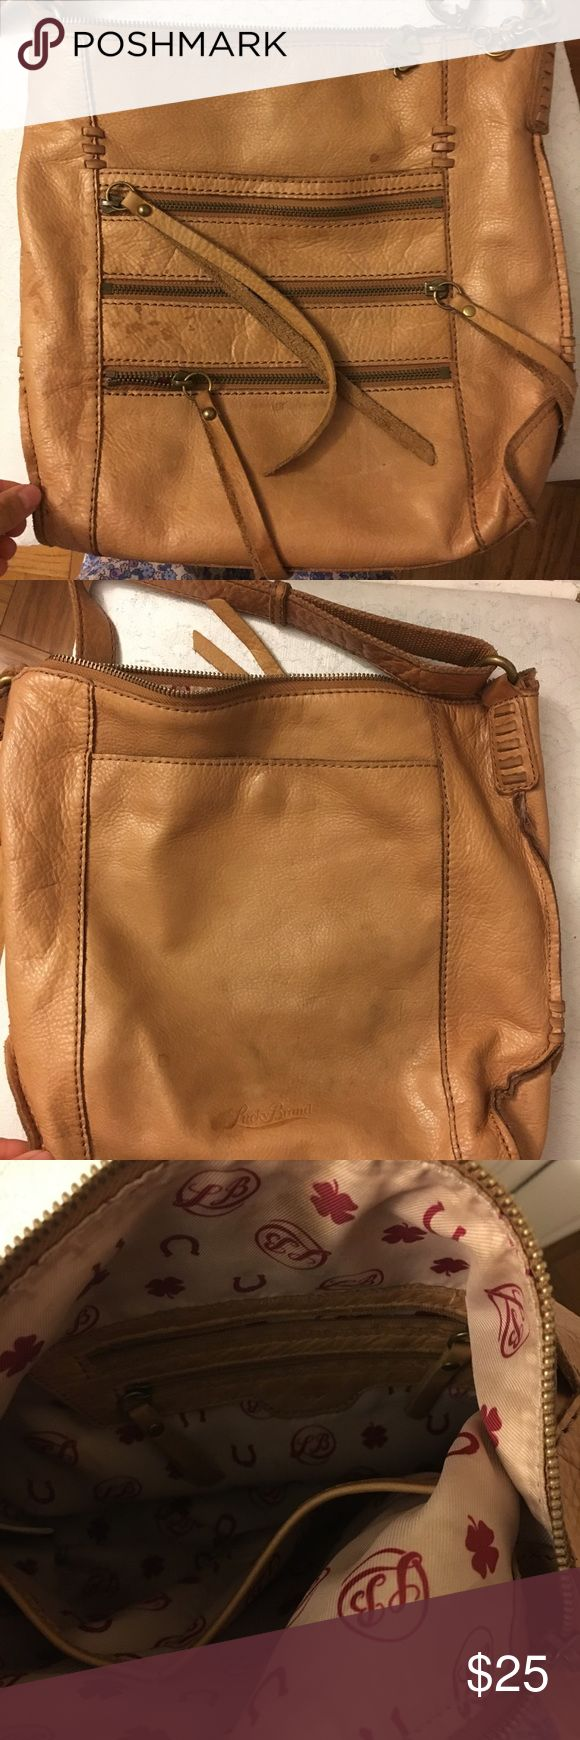 Lucky brand purse Upper cute and spacious lucky brand purse still in pretty good condition does have stains as pictured. Adjustable strap. Lucky Brand Bags Crossbody Bags